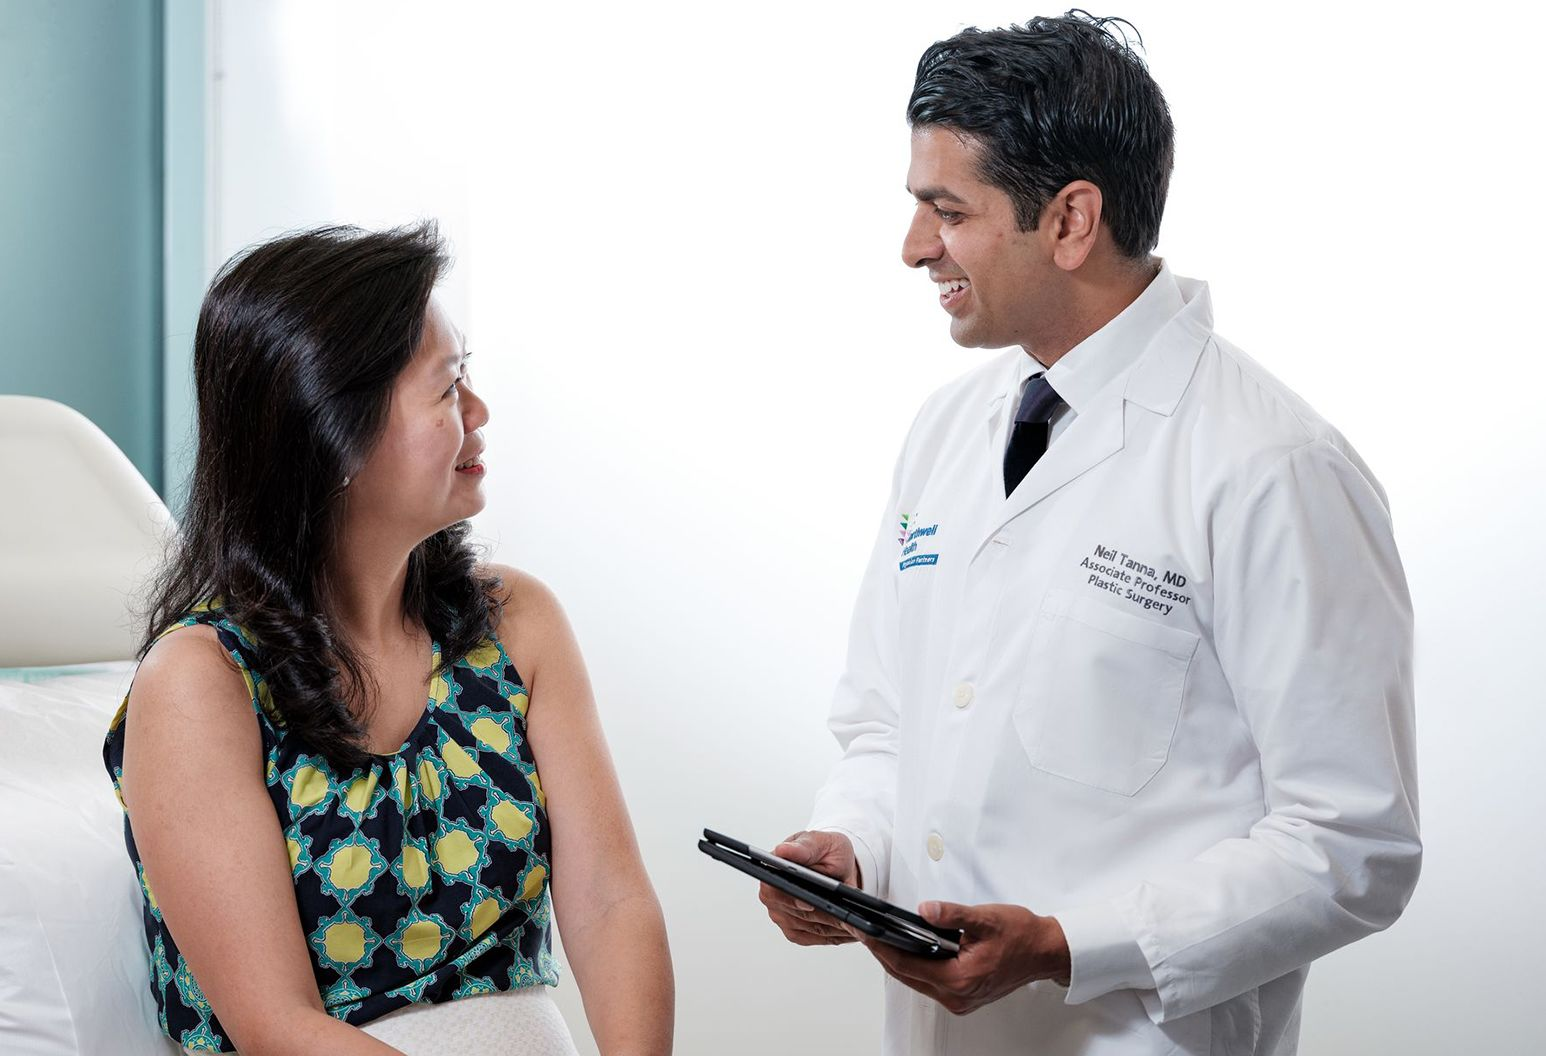 A male doctor with dark hair wears a white lab coat and holds an ipad as he speaks to a female patient who is sitting on an examination table. The woman is wearing a navy, turquise and yellow patterned shirt. They are both smiling.